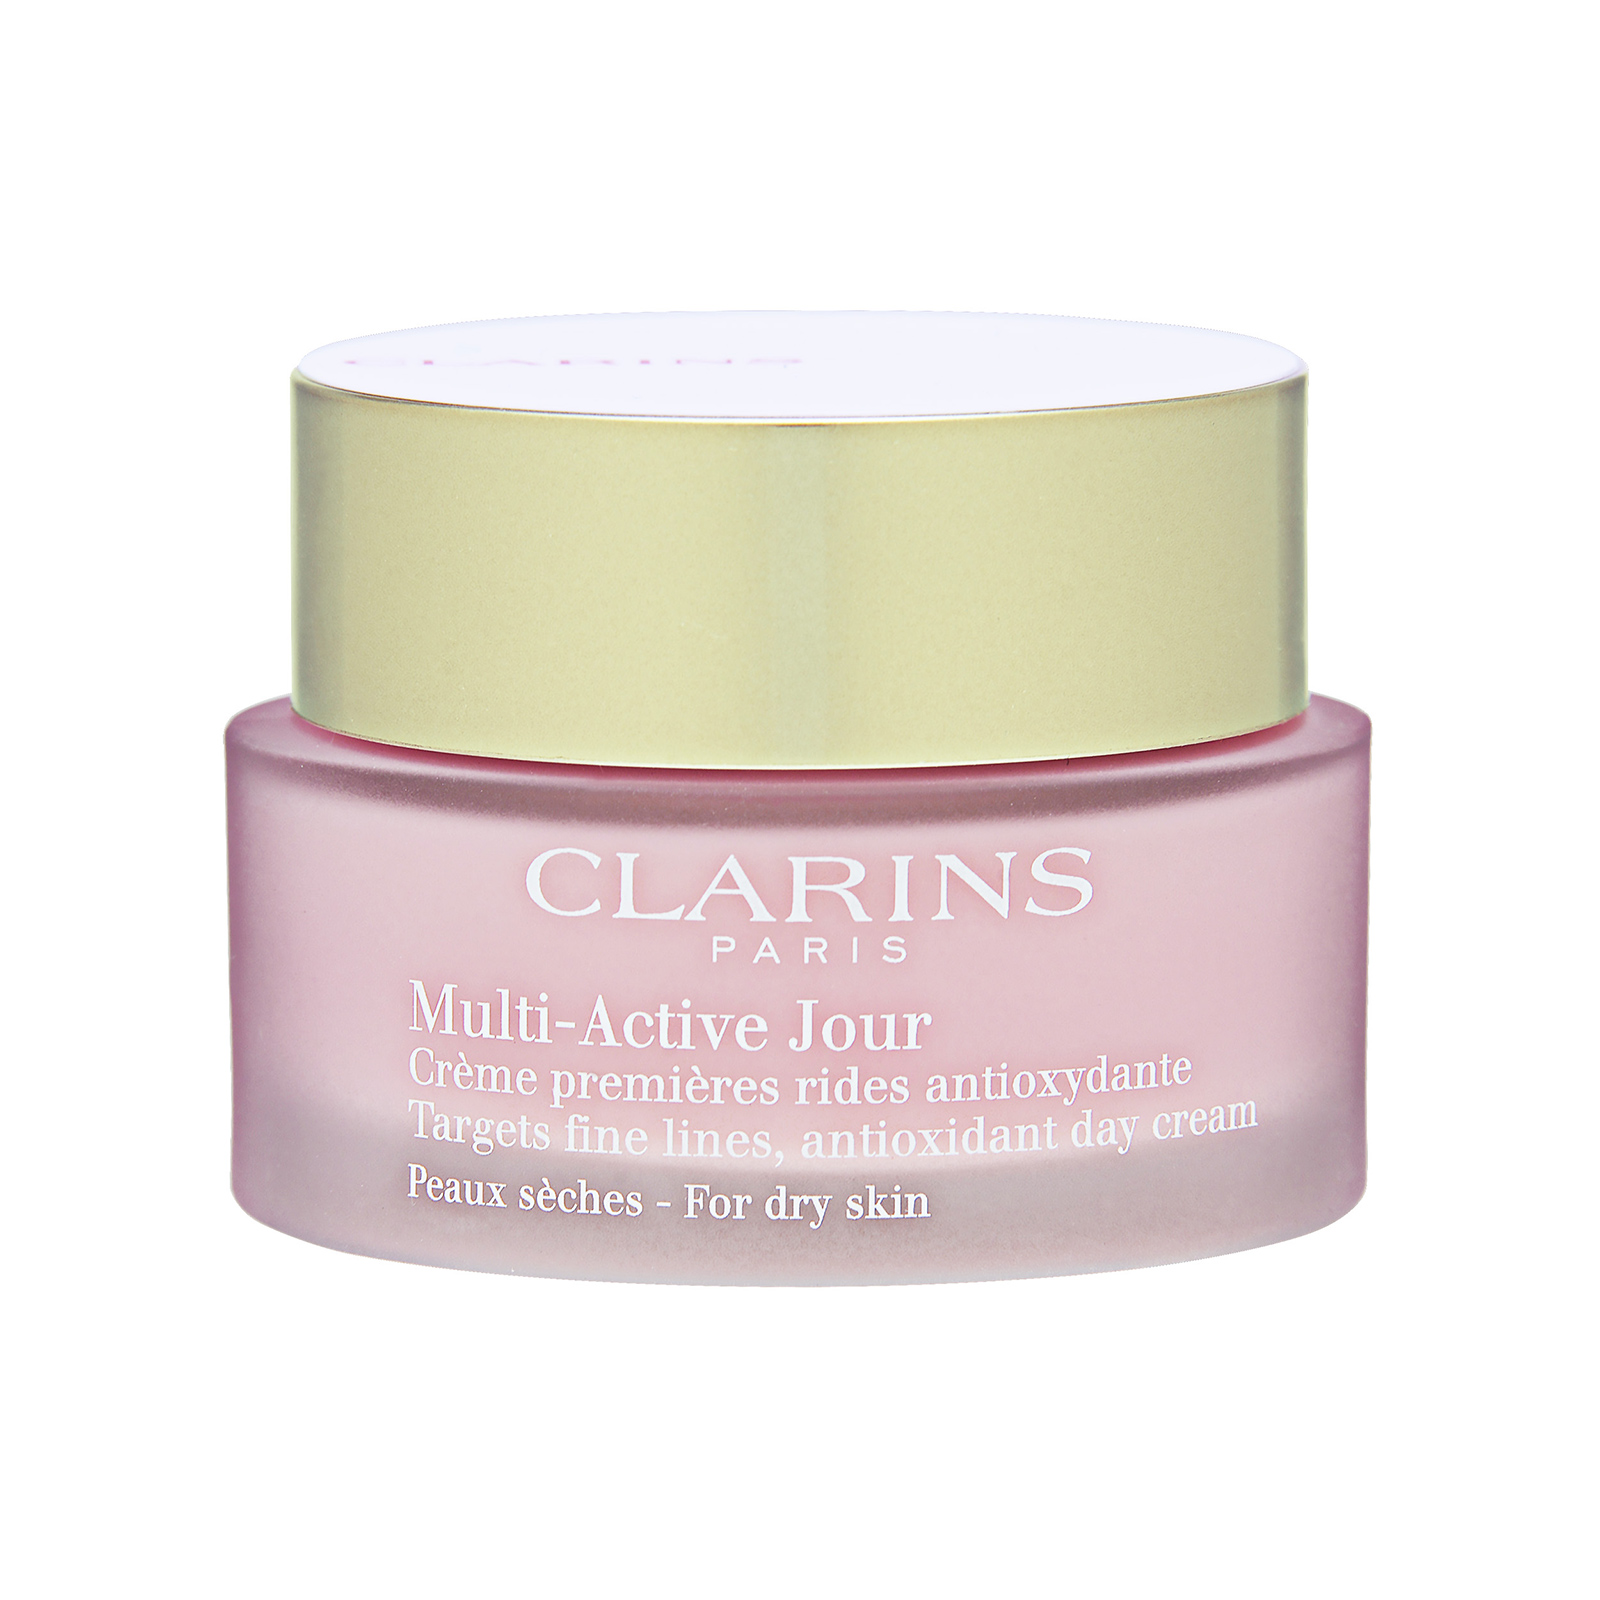 Clarins Multi-Active  Jour Day Cream (For Dry Skin) 1.6oz, 50ml CLX0100448-000-00